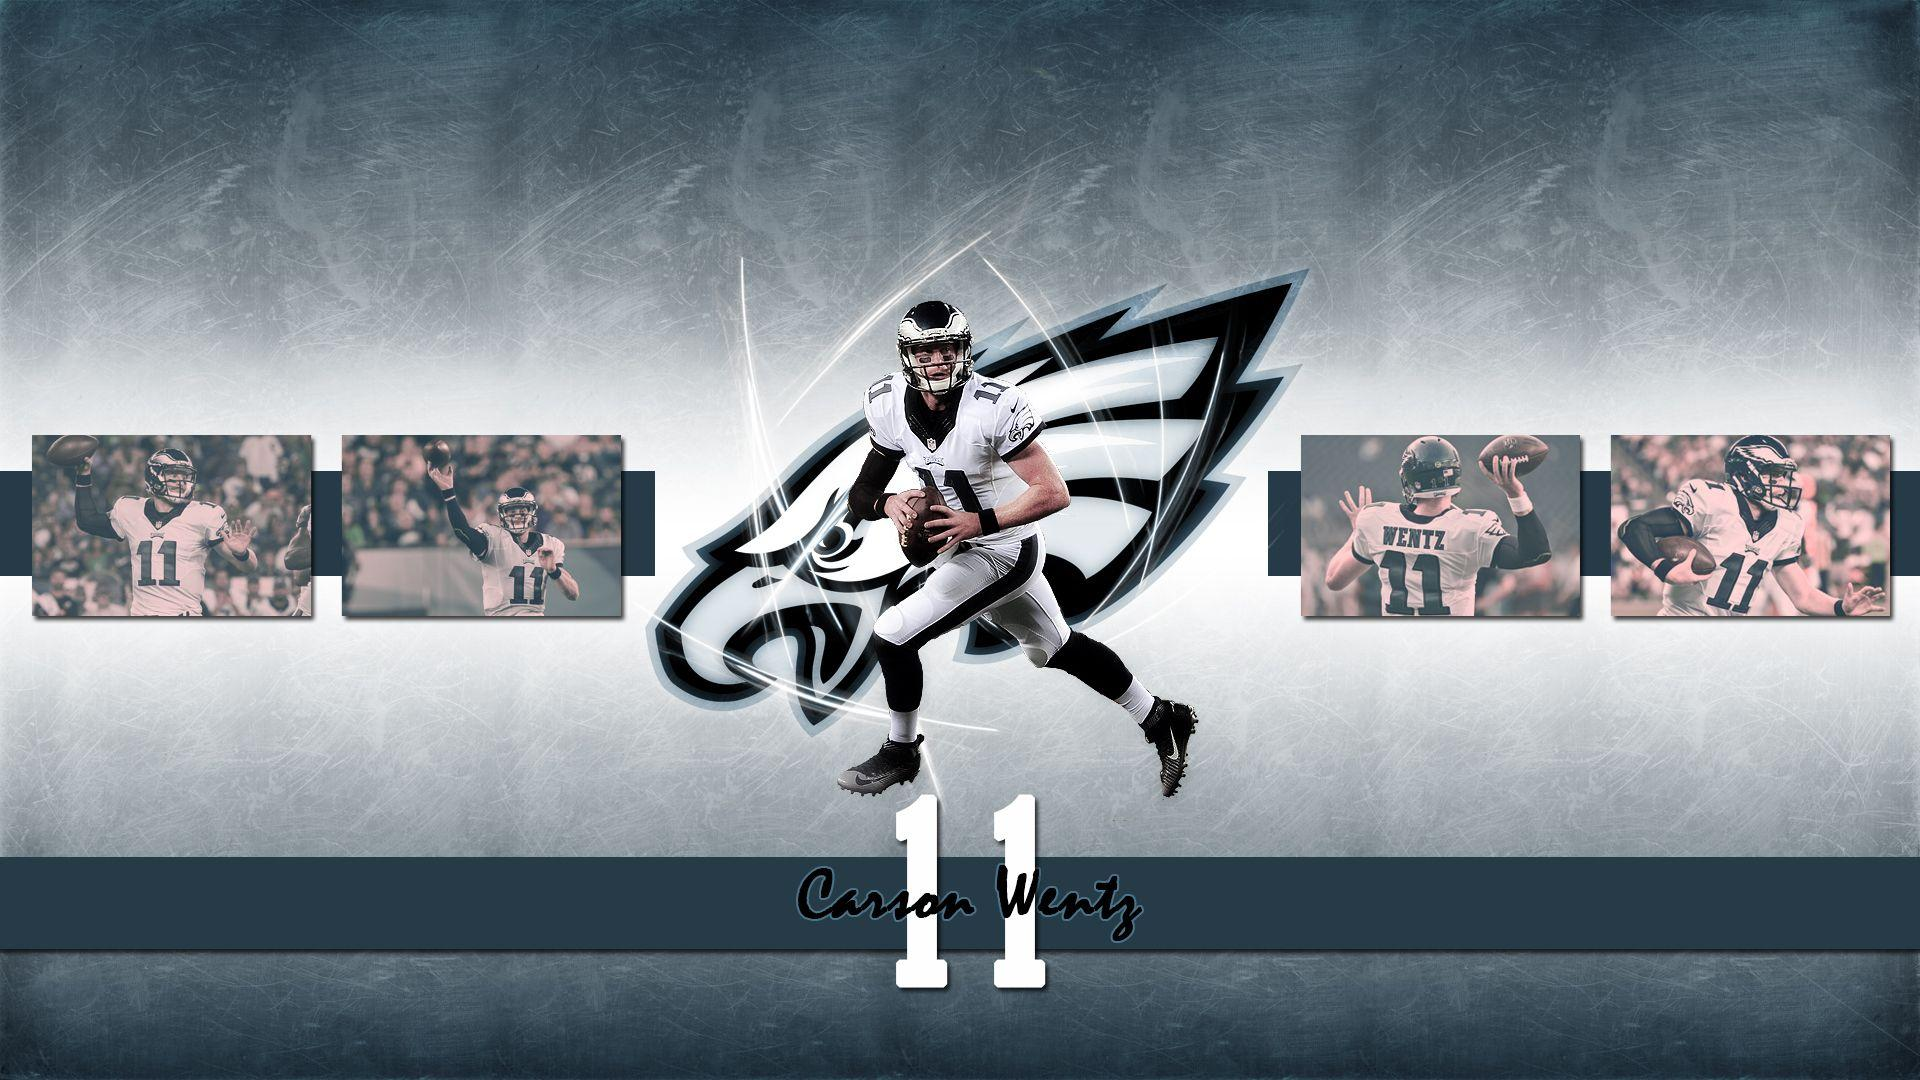 Carson Wentz Wallpaper Image Gallery - HCPR